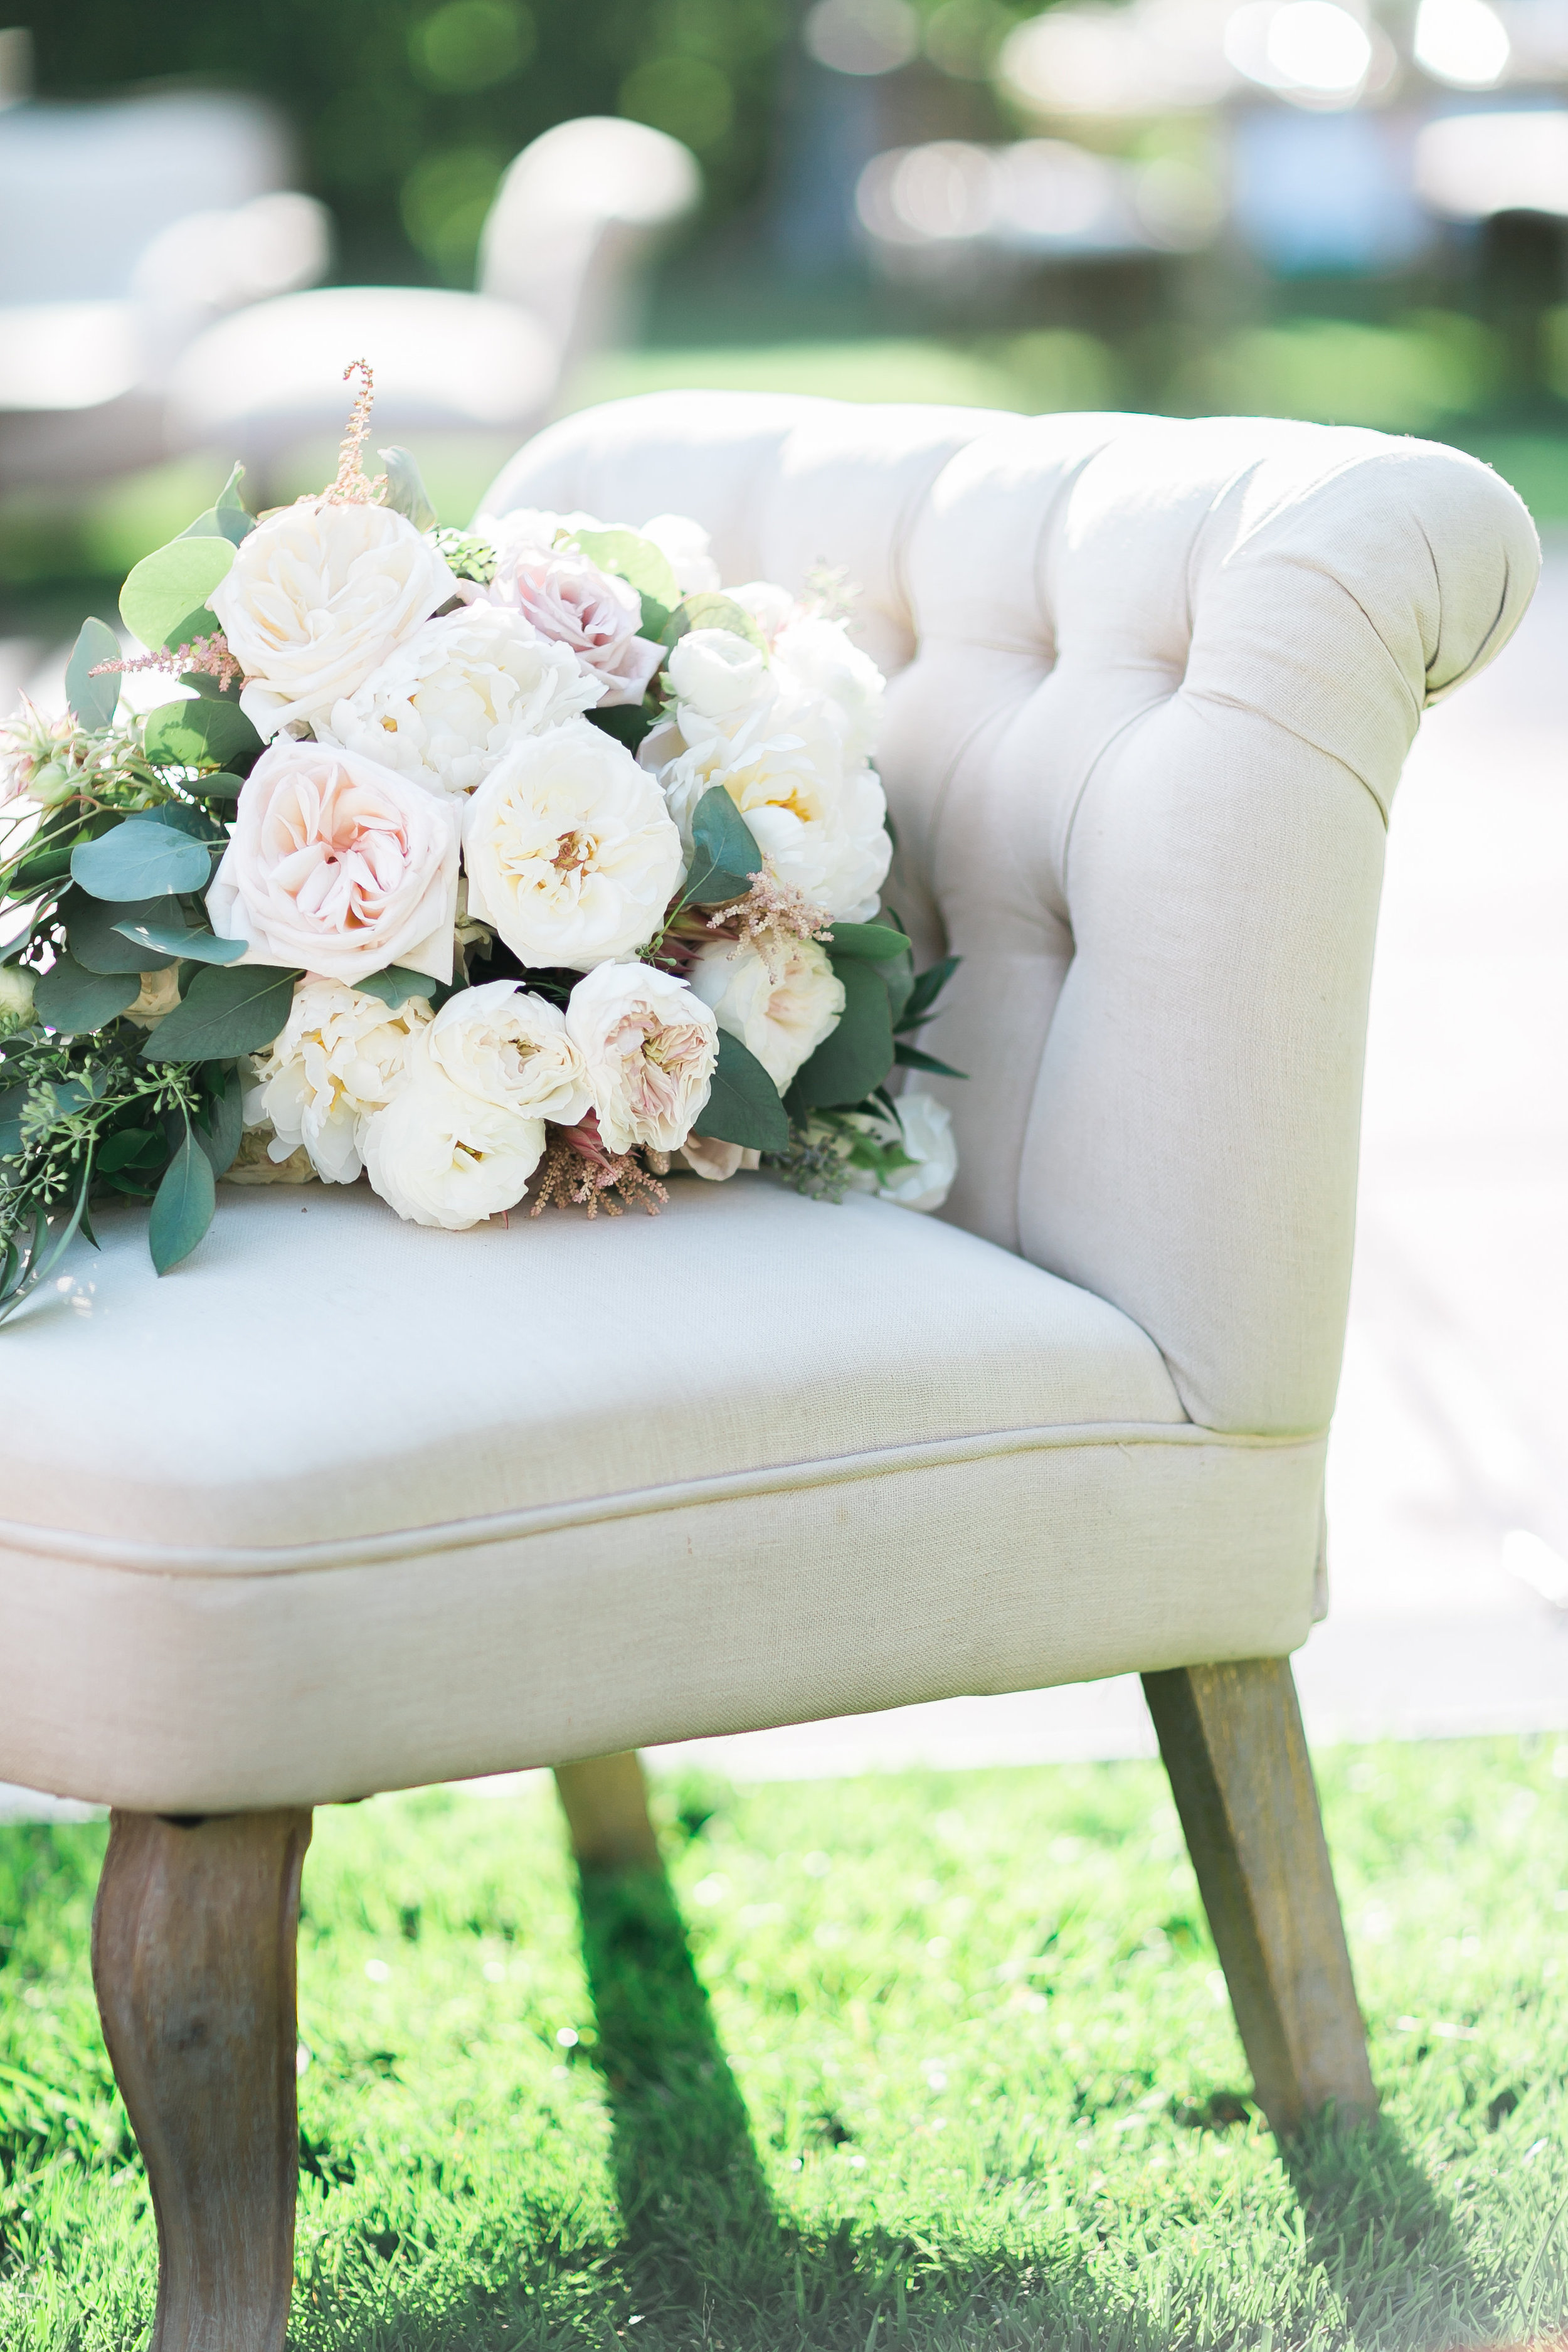 Garden bouquet on lounge chair at outdoor wedding.     Destination Wedding Planner  ANDREA EPPOLITO EVENTS  · Images by  J.ANNE P  HOTOOGRAPHY  · Video  HOO FILMS  · Venue Ritz Carlton Bacara Santa Barbara ·Gown MONIQUE LHULLIER ·Bridesmaids Dresses  SHOW ME YOUR MUMU ·Stationery  SHE PAPERIE ·Bride's Shoes  BADGLEY MISCHKA ·Hair and Makeup  TEAM HAIR AND MAKEUP · Floral  BLUE MAGNOLIA ·Linen  LA TAVOLA ·Decor Rentals  TENT MERCHANT ·Calligraphy  EBB ·Lighting  FIVE STAR AV ·Ice Cream Station  MCCONNELL'S ICE CREAM